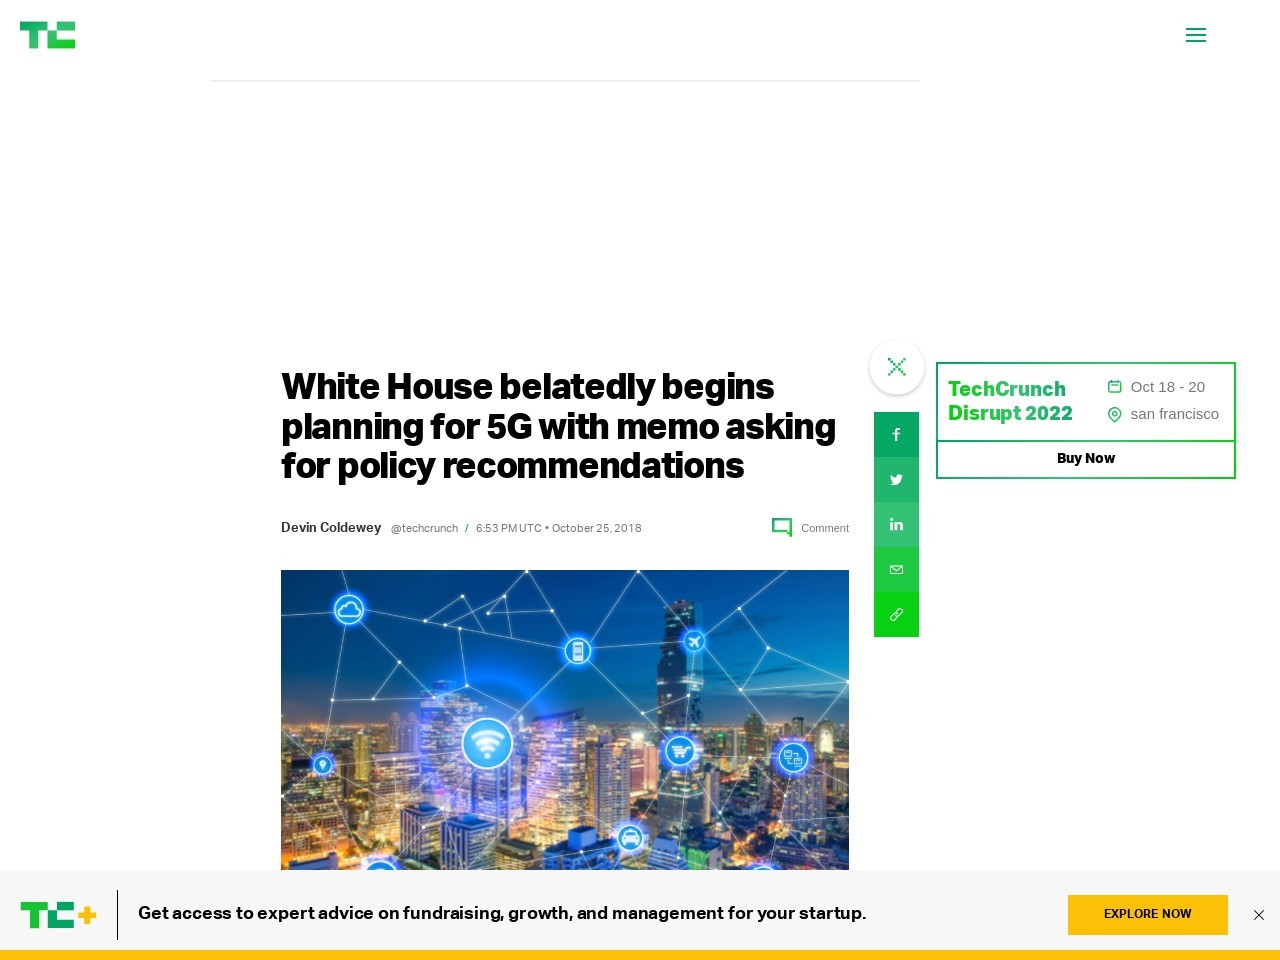 White House belatedly begins planning for 5G with memo asking for policy recommendations